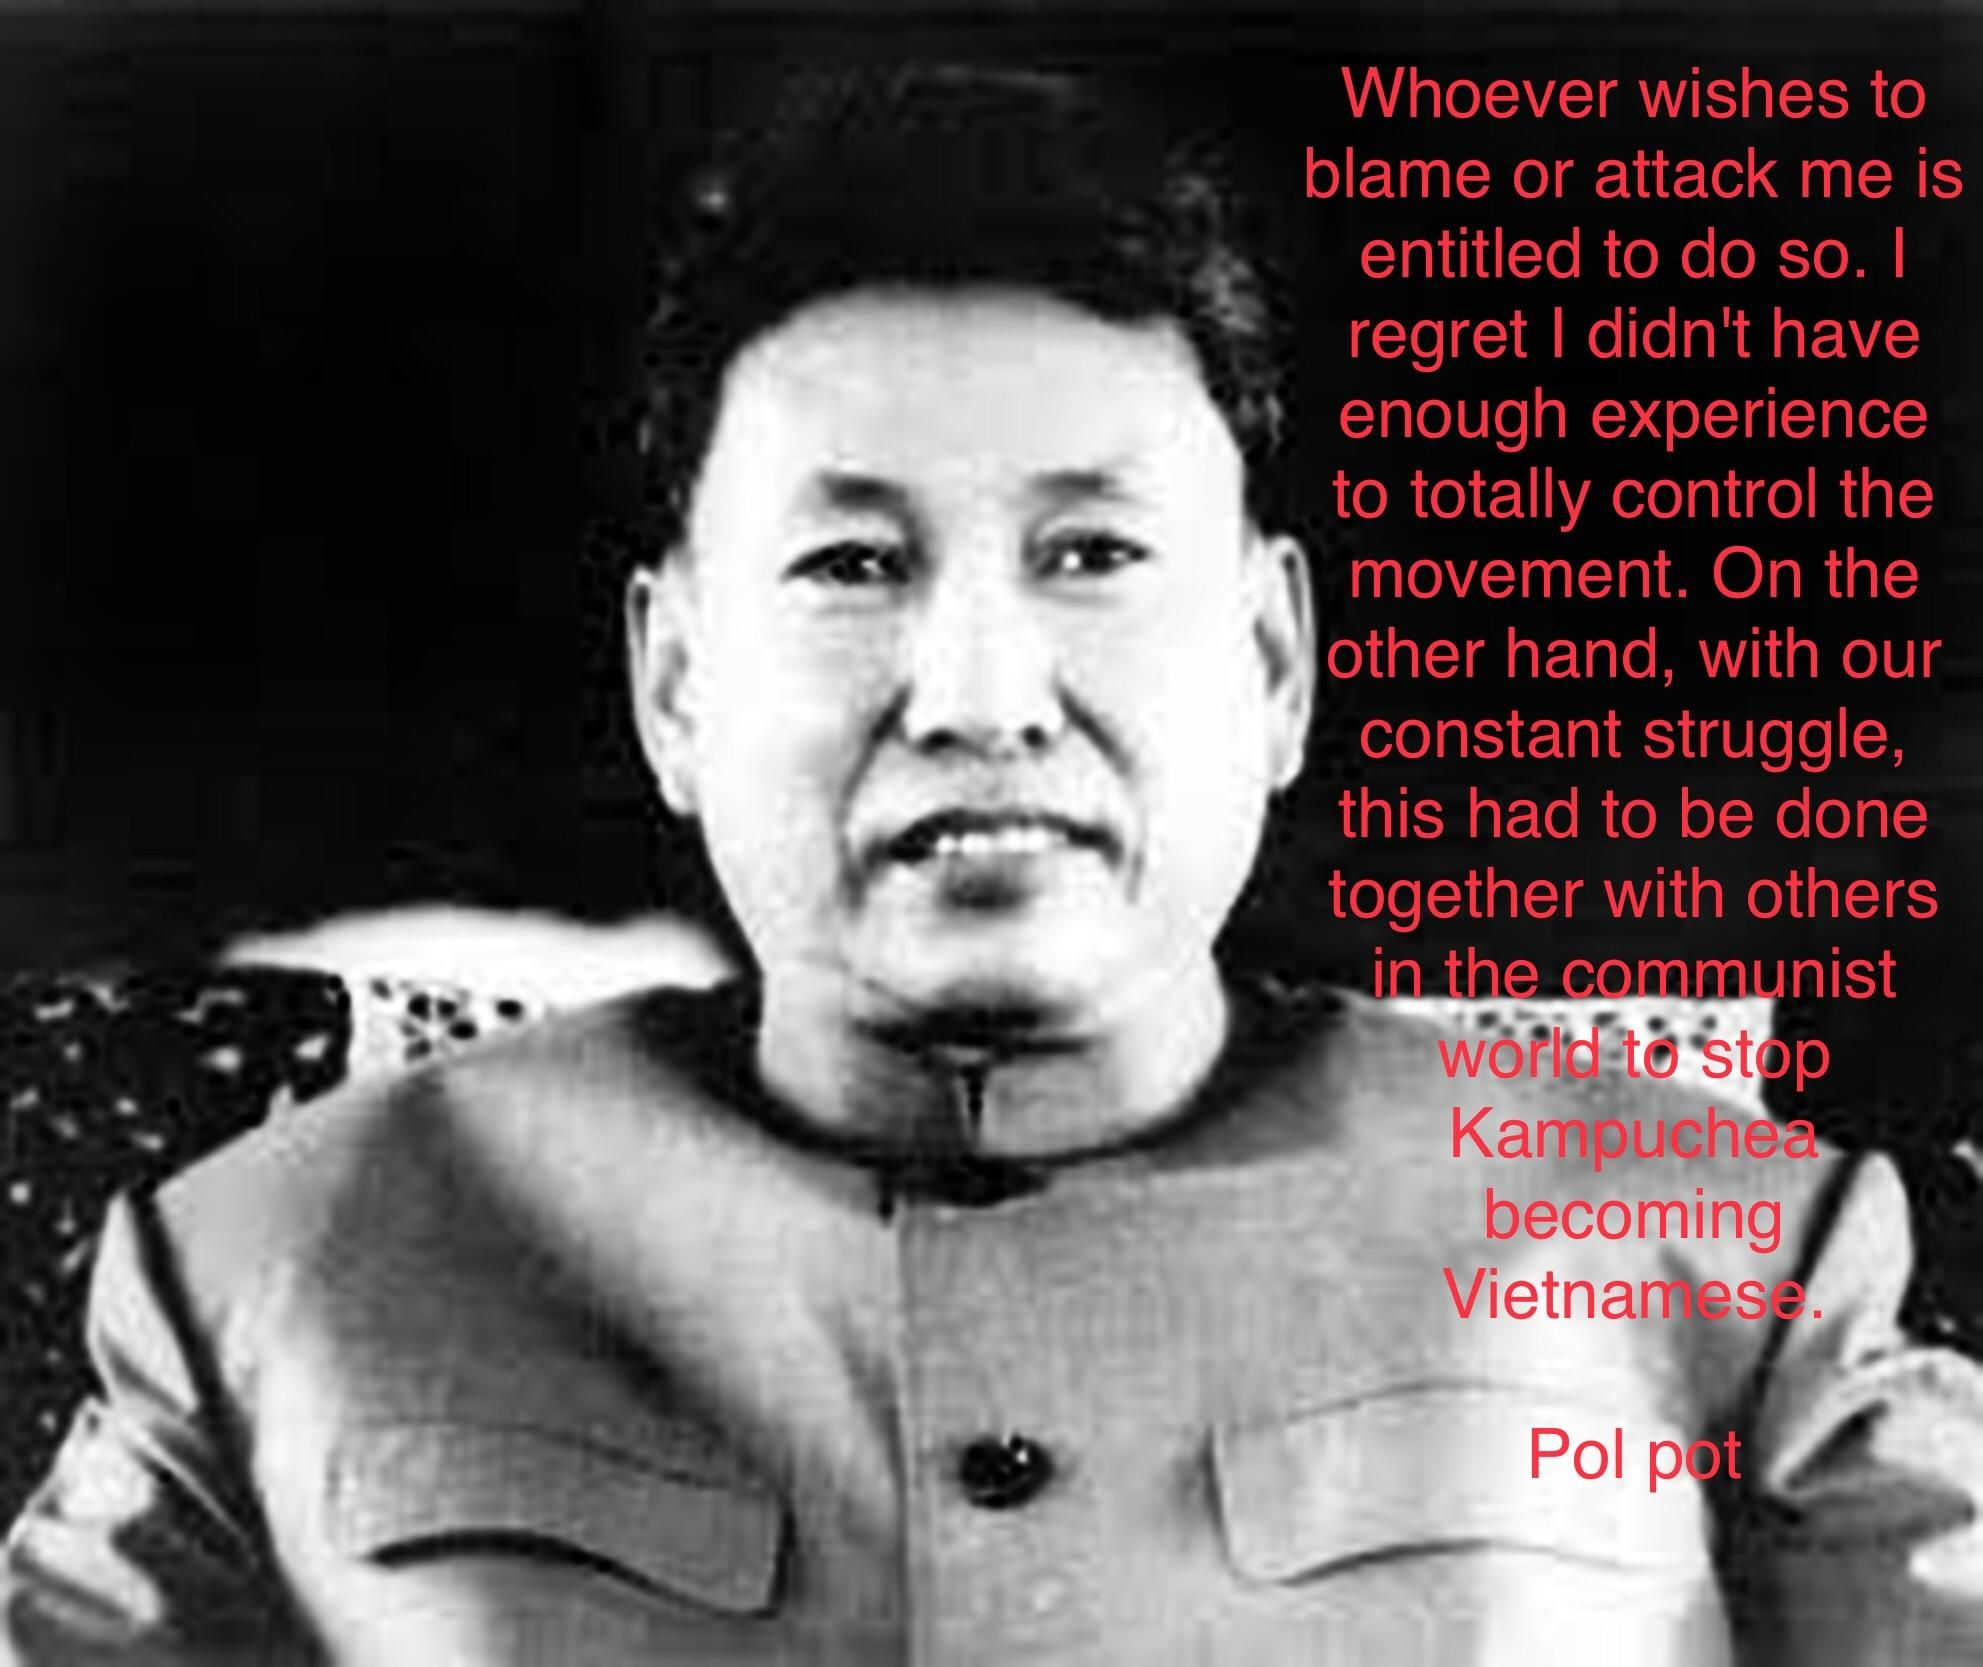 Pol Pot Quotes Delectable Whoever Wishes To Blame Or Attack Me Is Entitled To Do Sopol . Decorating Design